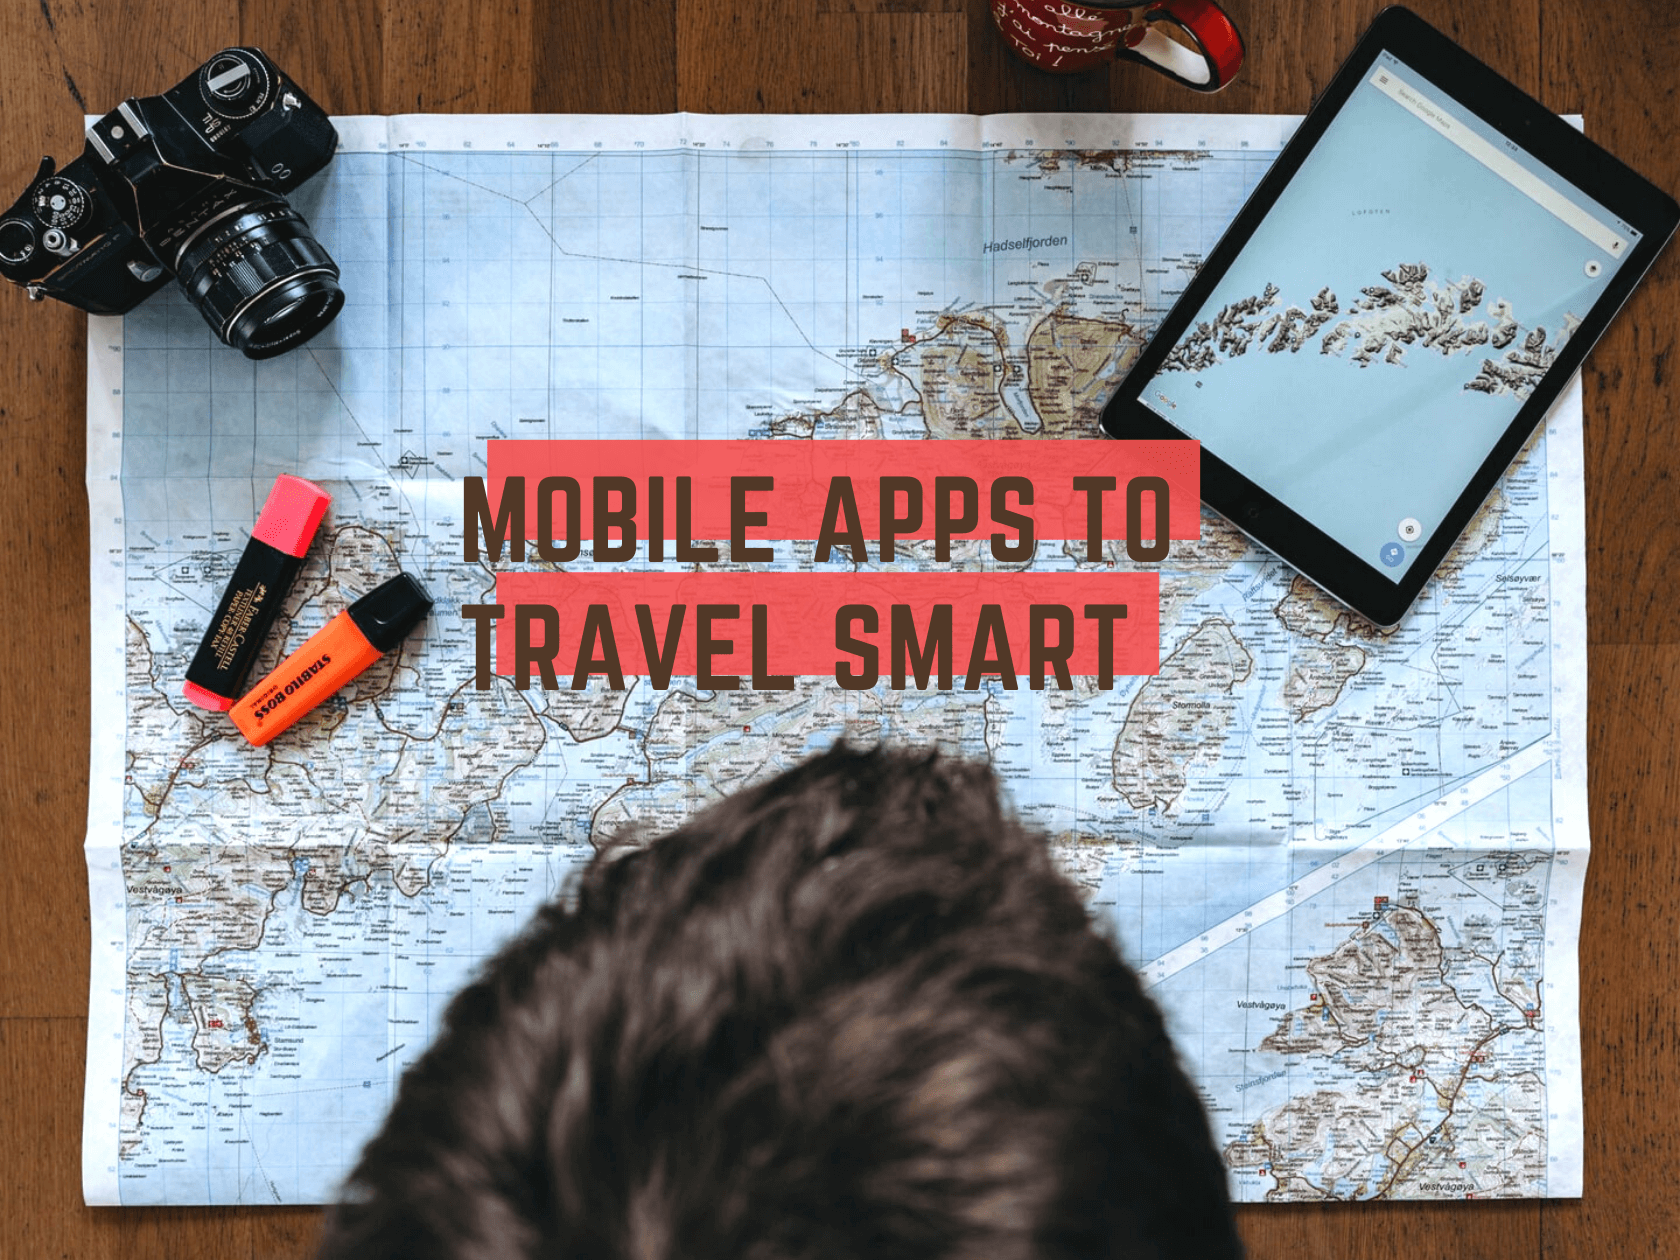 Mobile apps to travel smart